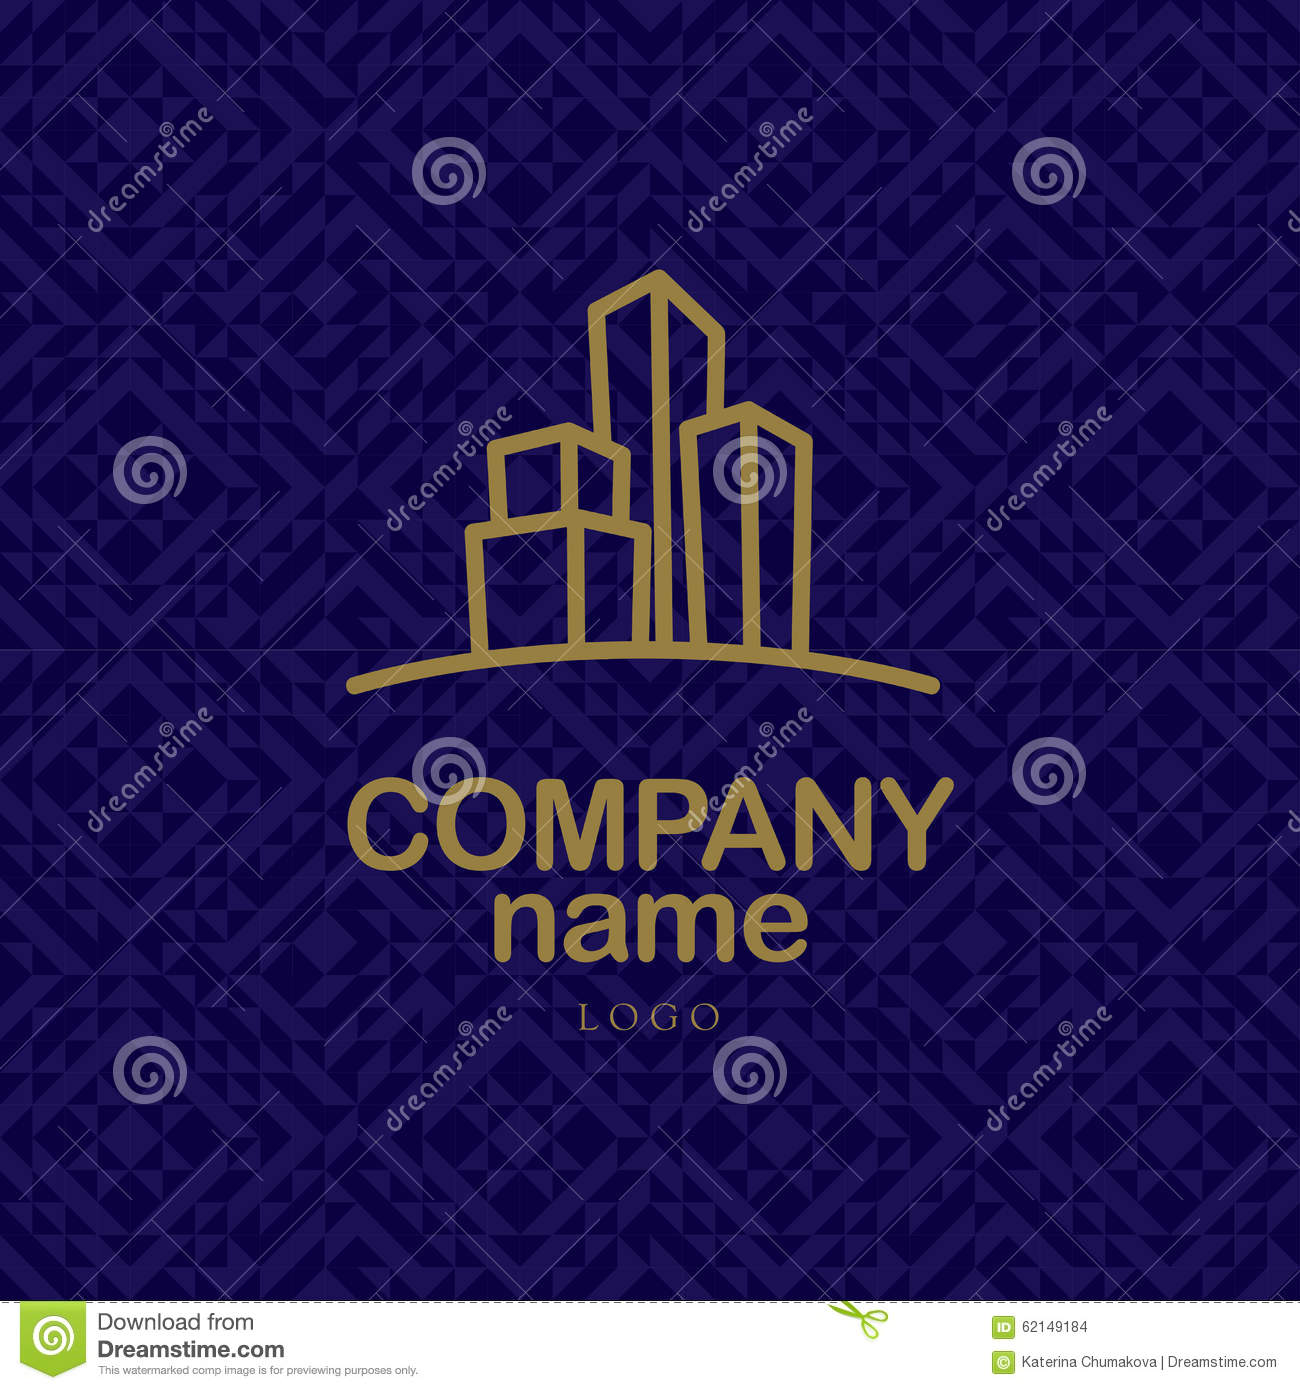 Vector logo design for urban building company and for Industrial design company